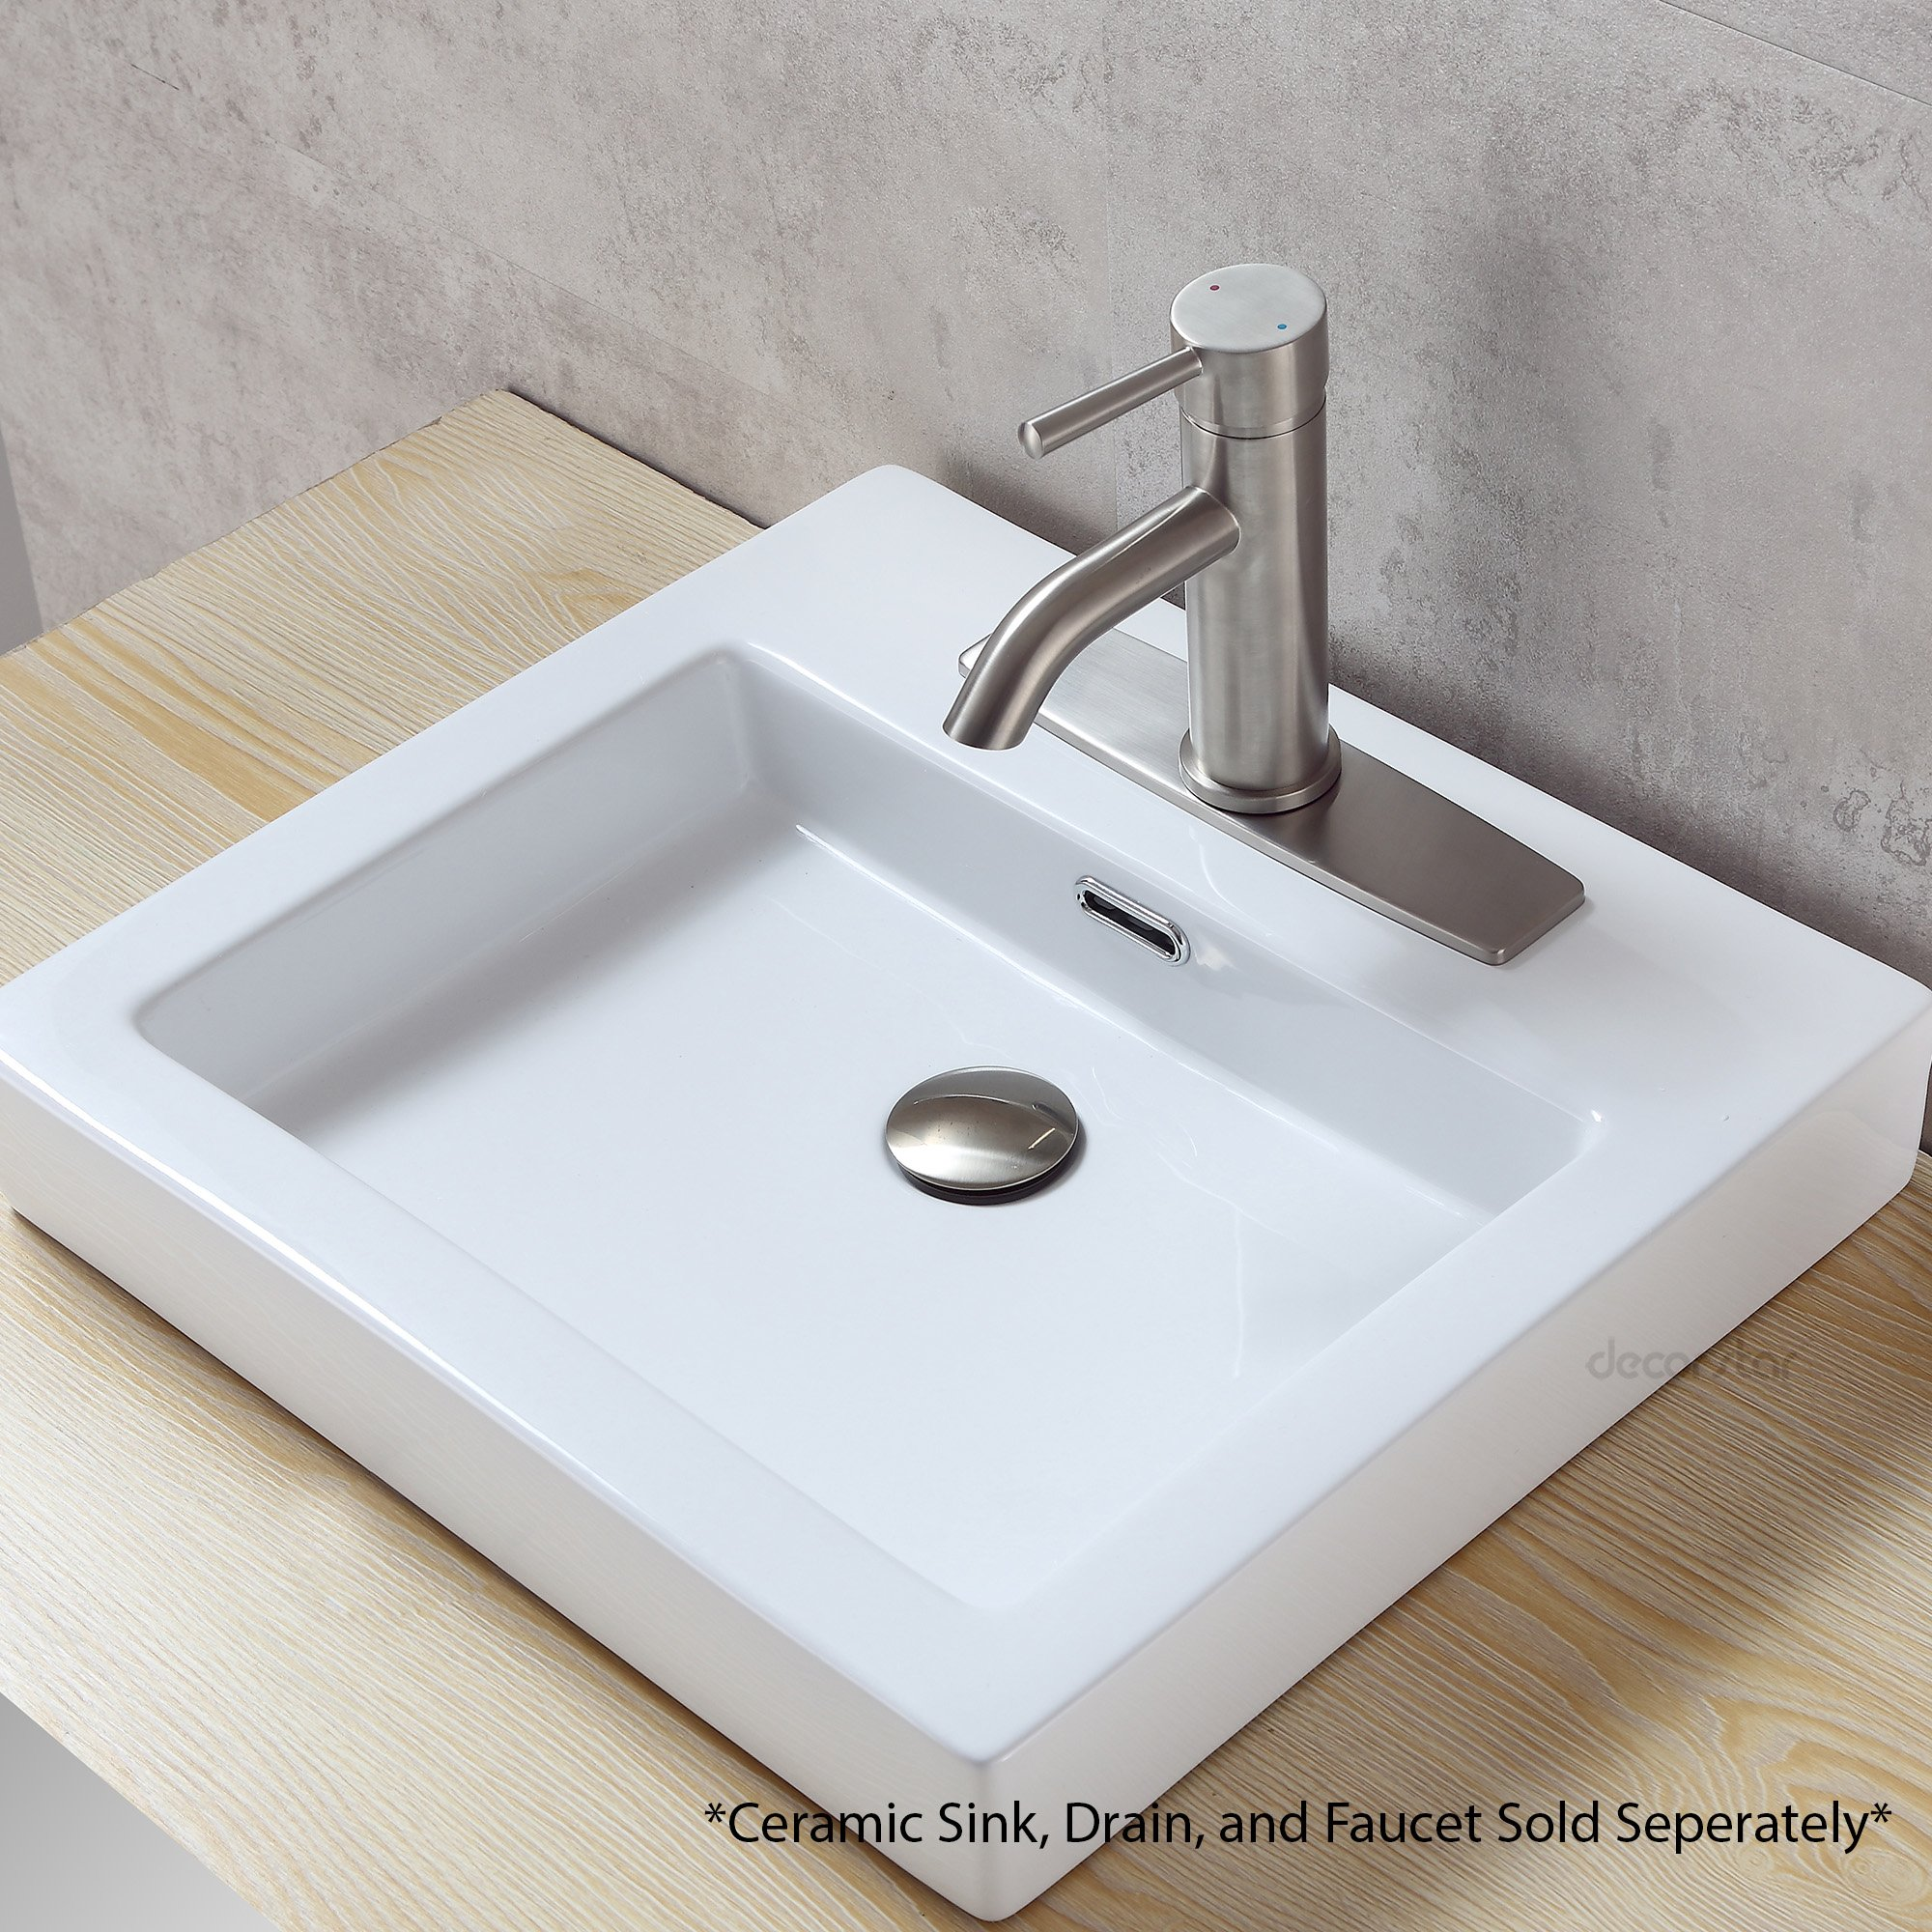 Decor Star PLATE-10B 10'' Kitchen Sink Faucet Hole Cover Deck Plate Escutcheon Brushed NickeL by Decor Star (Image #3)